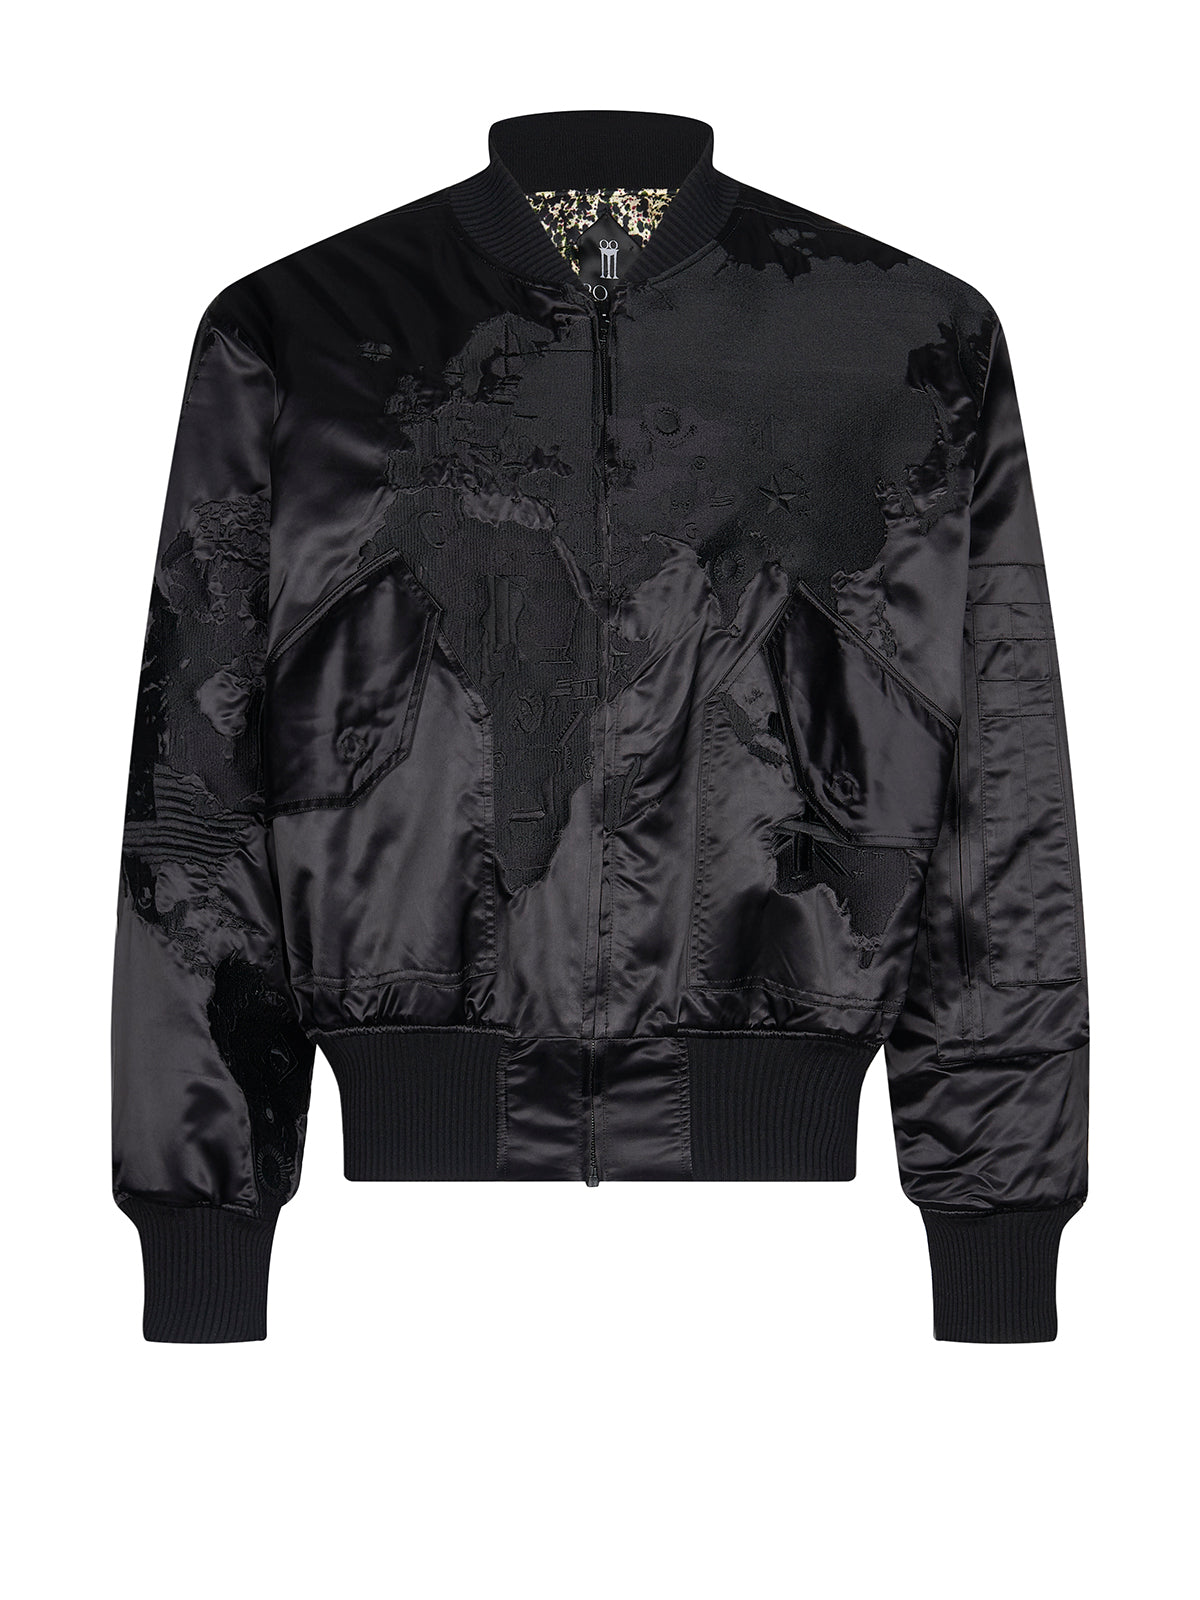 Satin worldmap bomber jacket in black